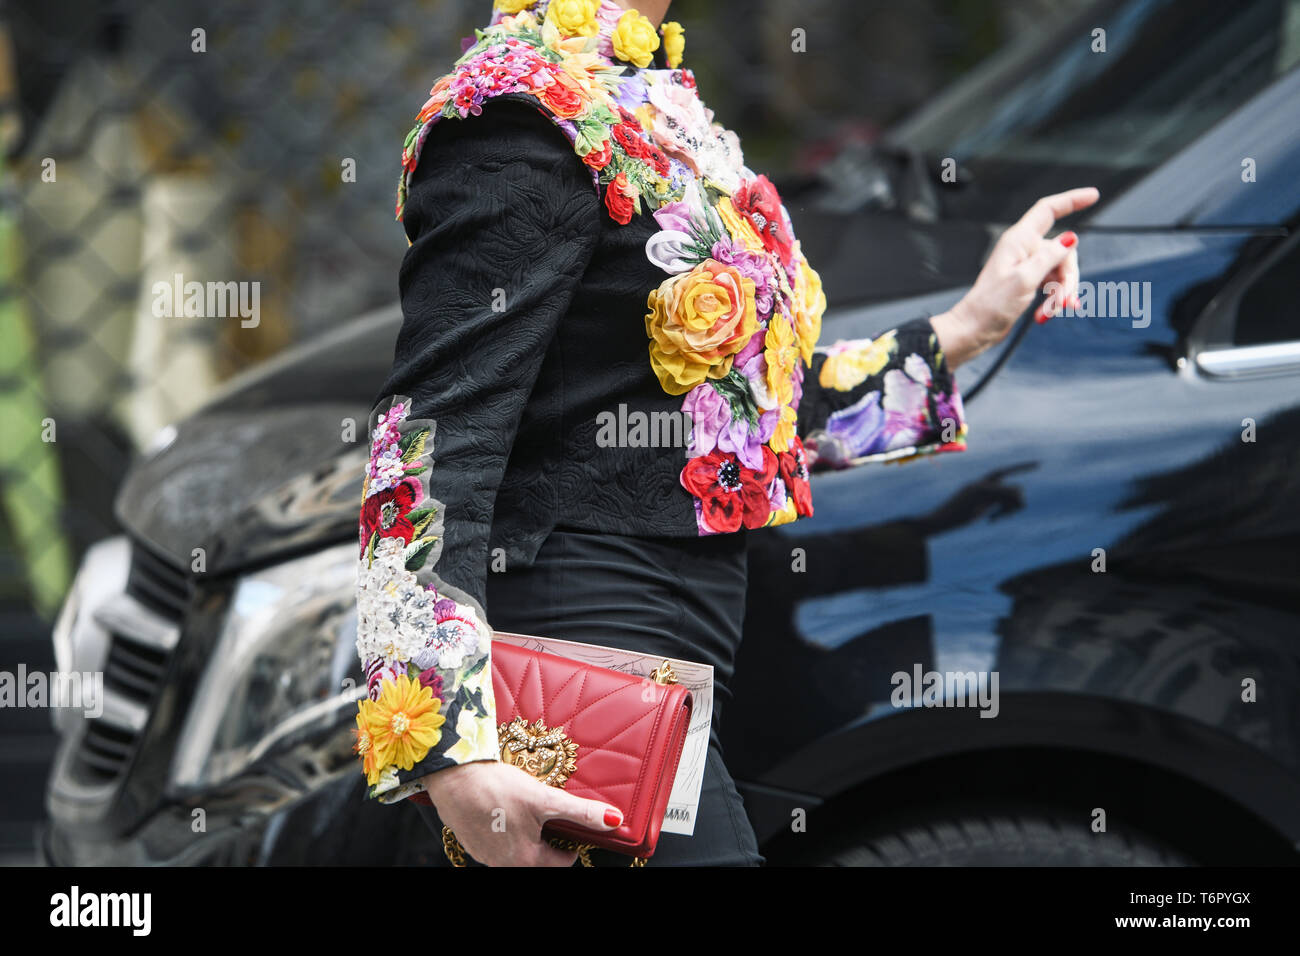 Milan, Italy - February 24, 2019: Street style – Dolce & Gabbana outfit after a fashion show during Milan Fashion Week - MFWFW19 - Stock Image